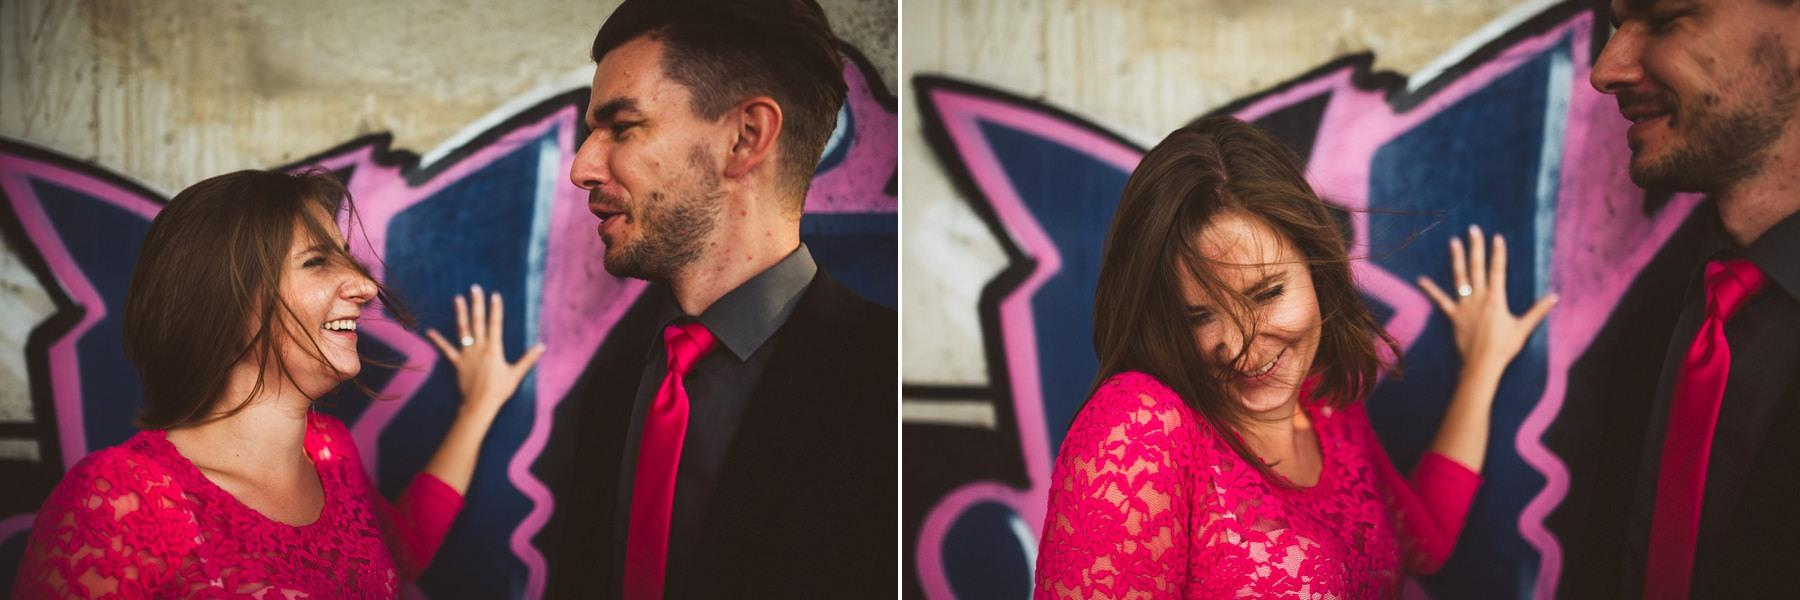 creative abandoned building wedding session elopement 047 - Abandoned Building Wedding Session